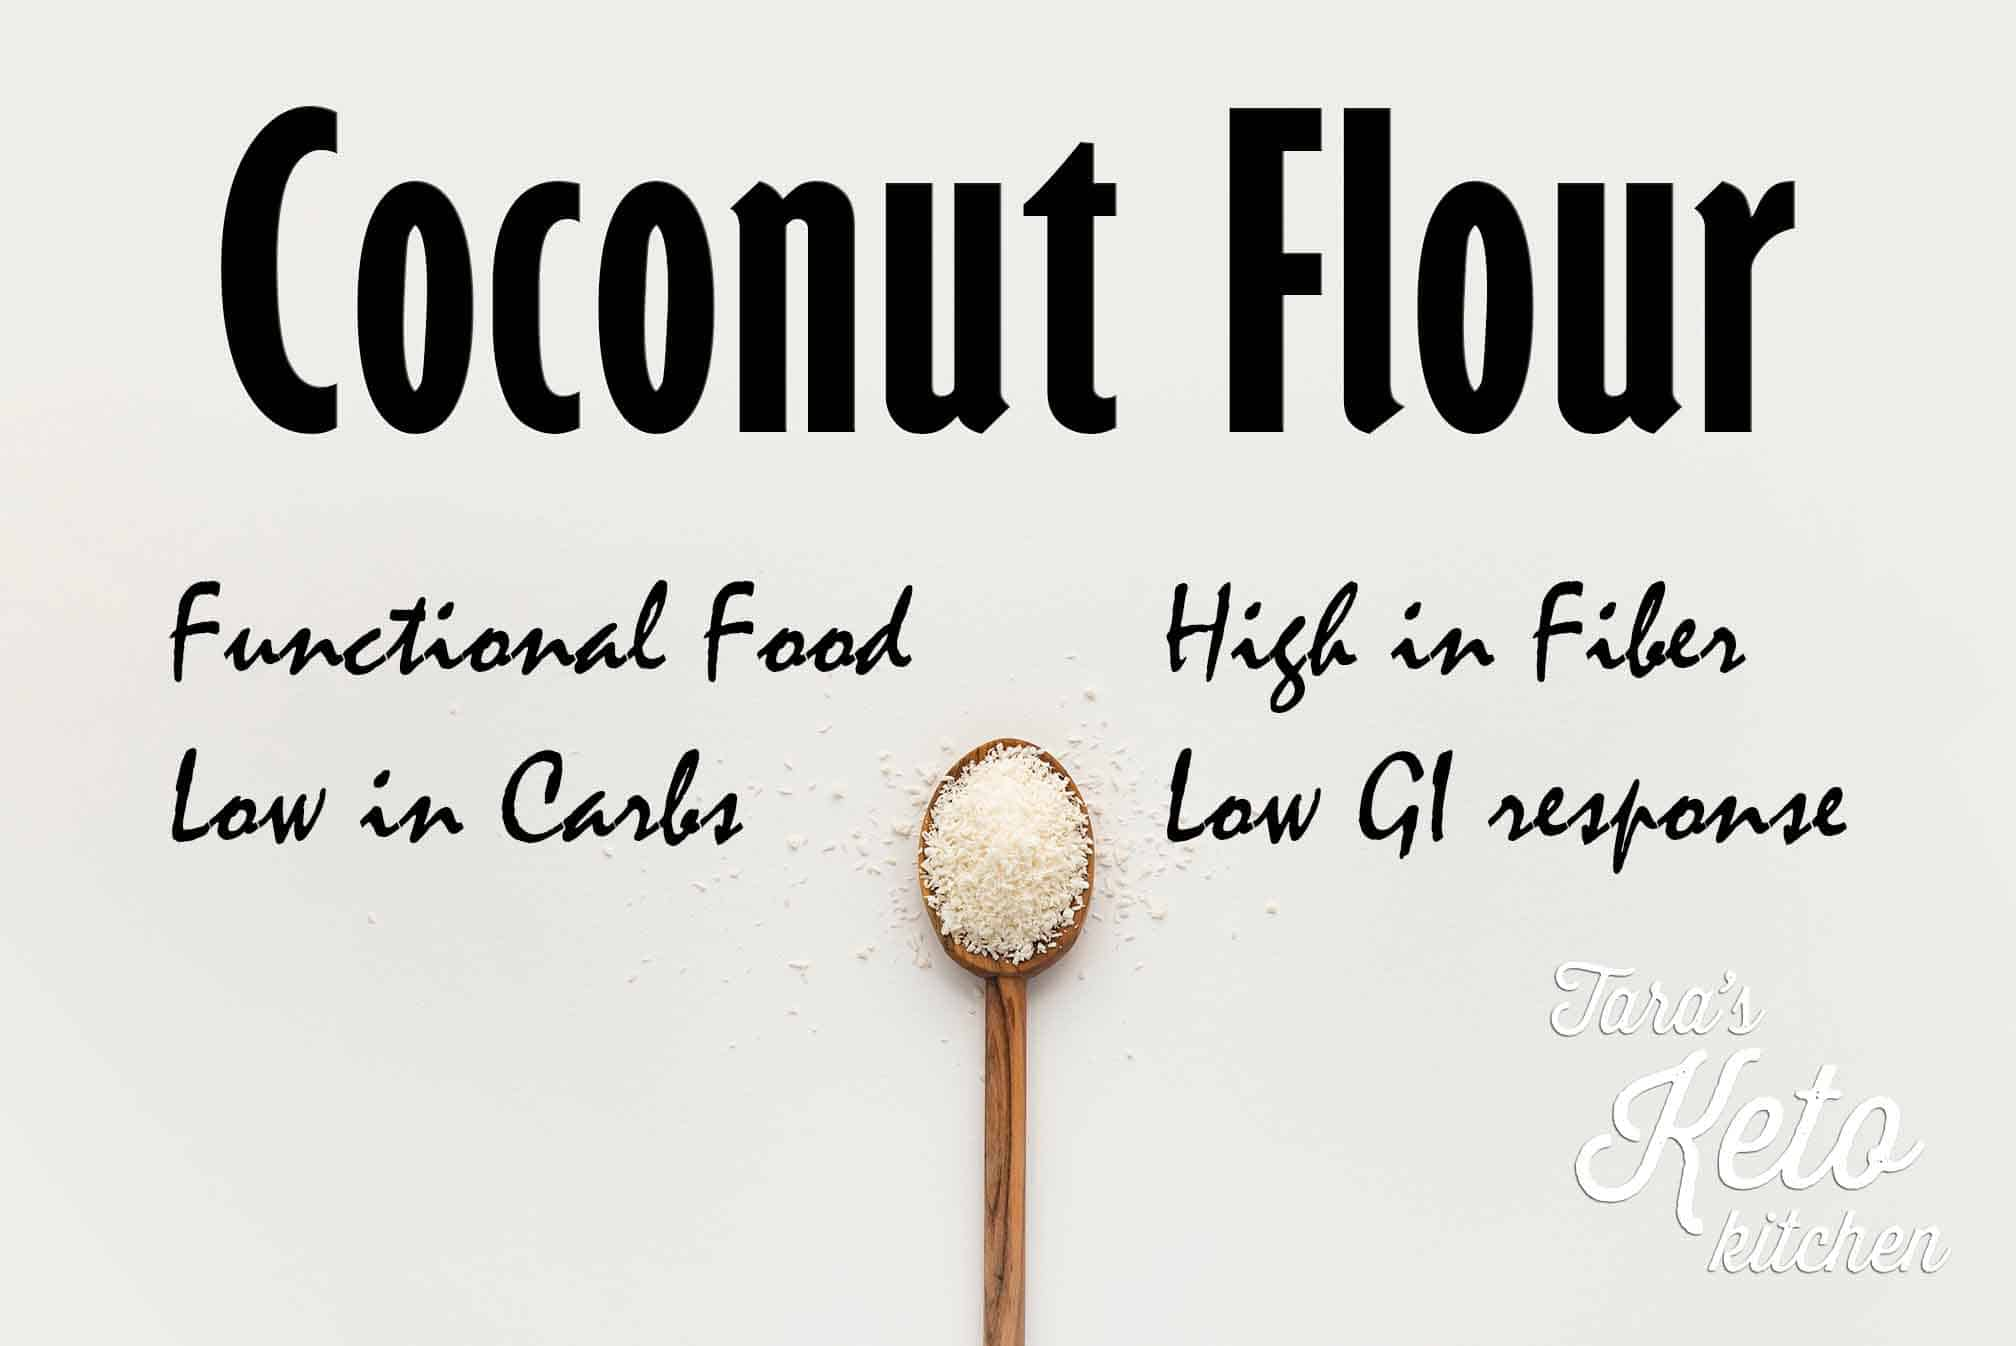 image showing the health benefits of coconut flour